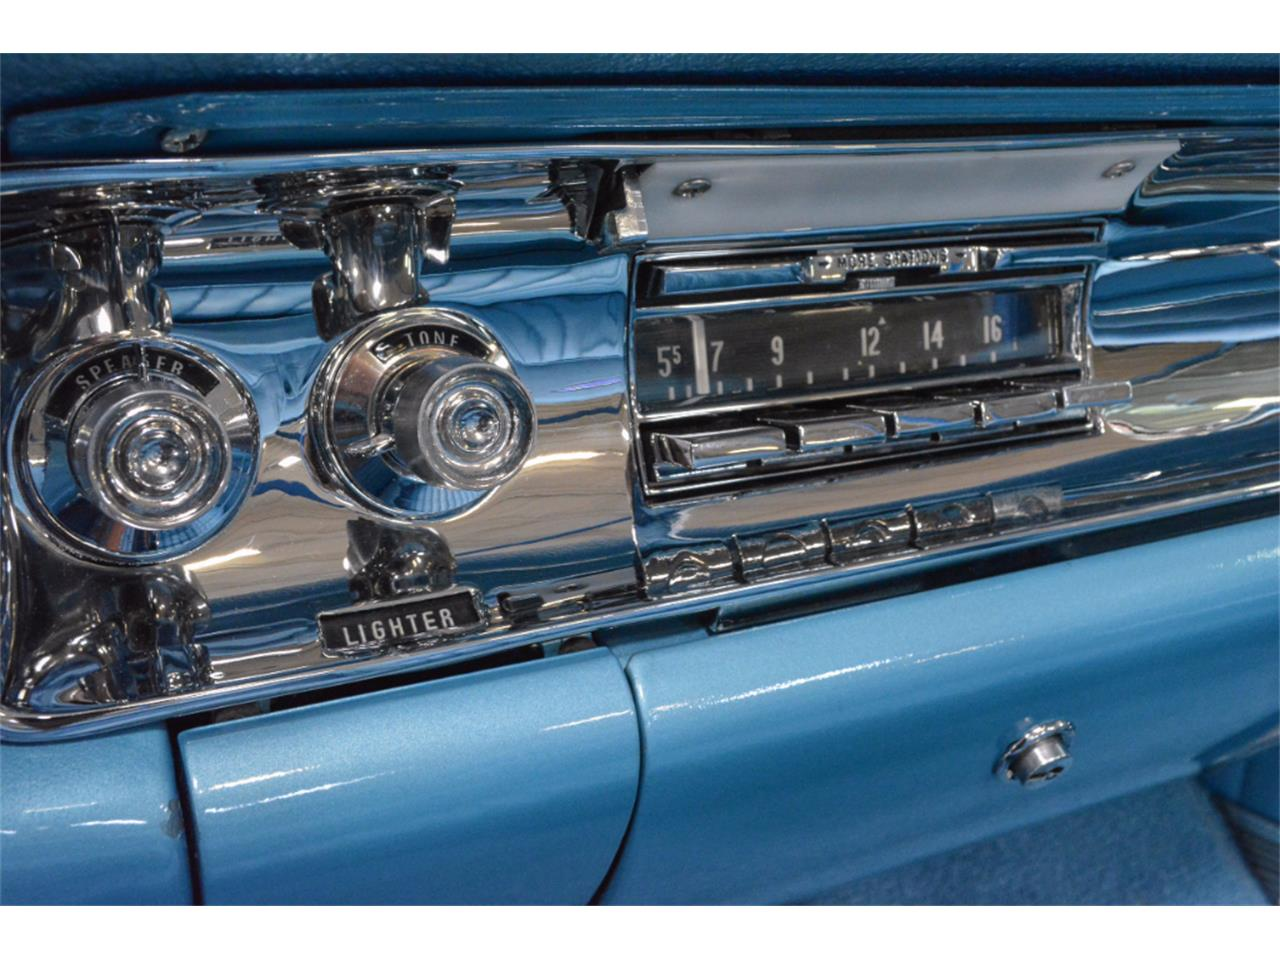 Large Picture of Classic 1957 Cadillac Eldorado located in Ohio Offered by John Kufleitner's Galleria - LKLZ